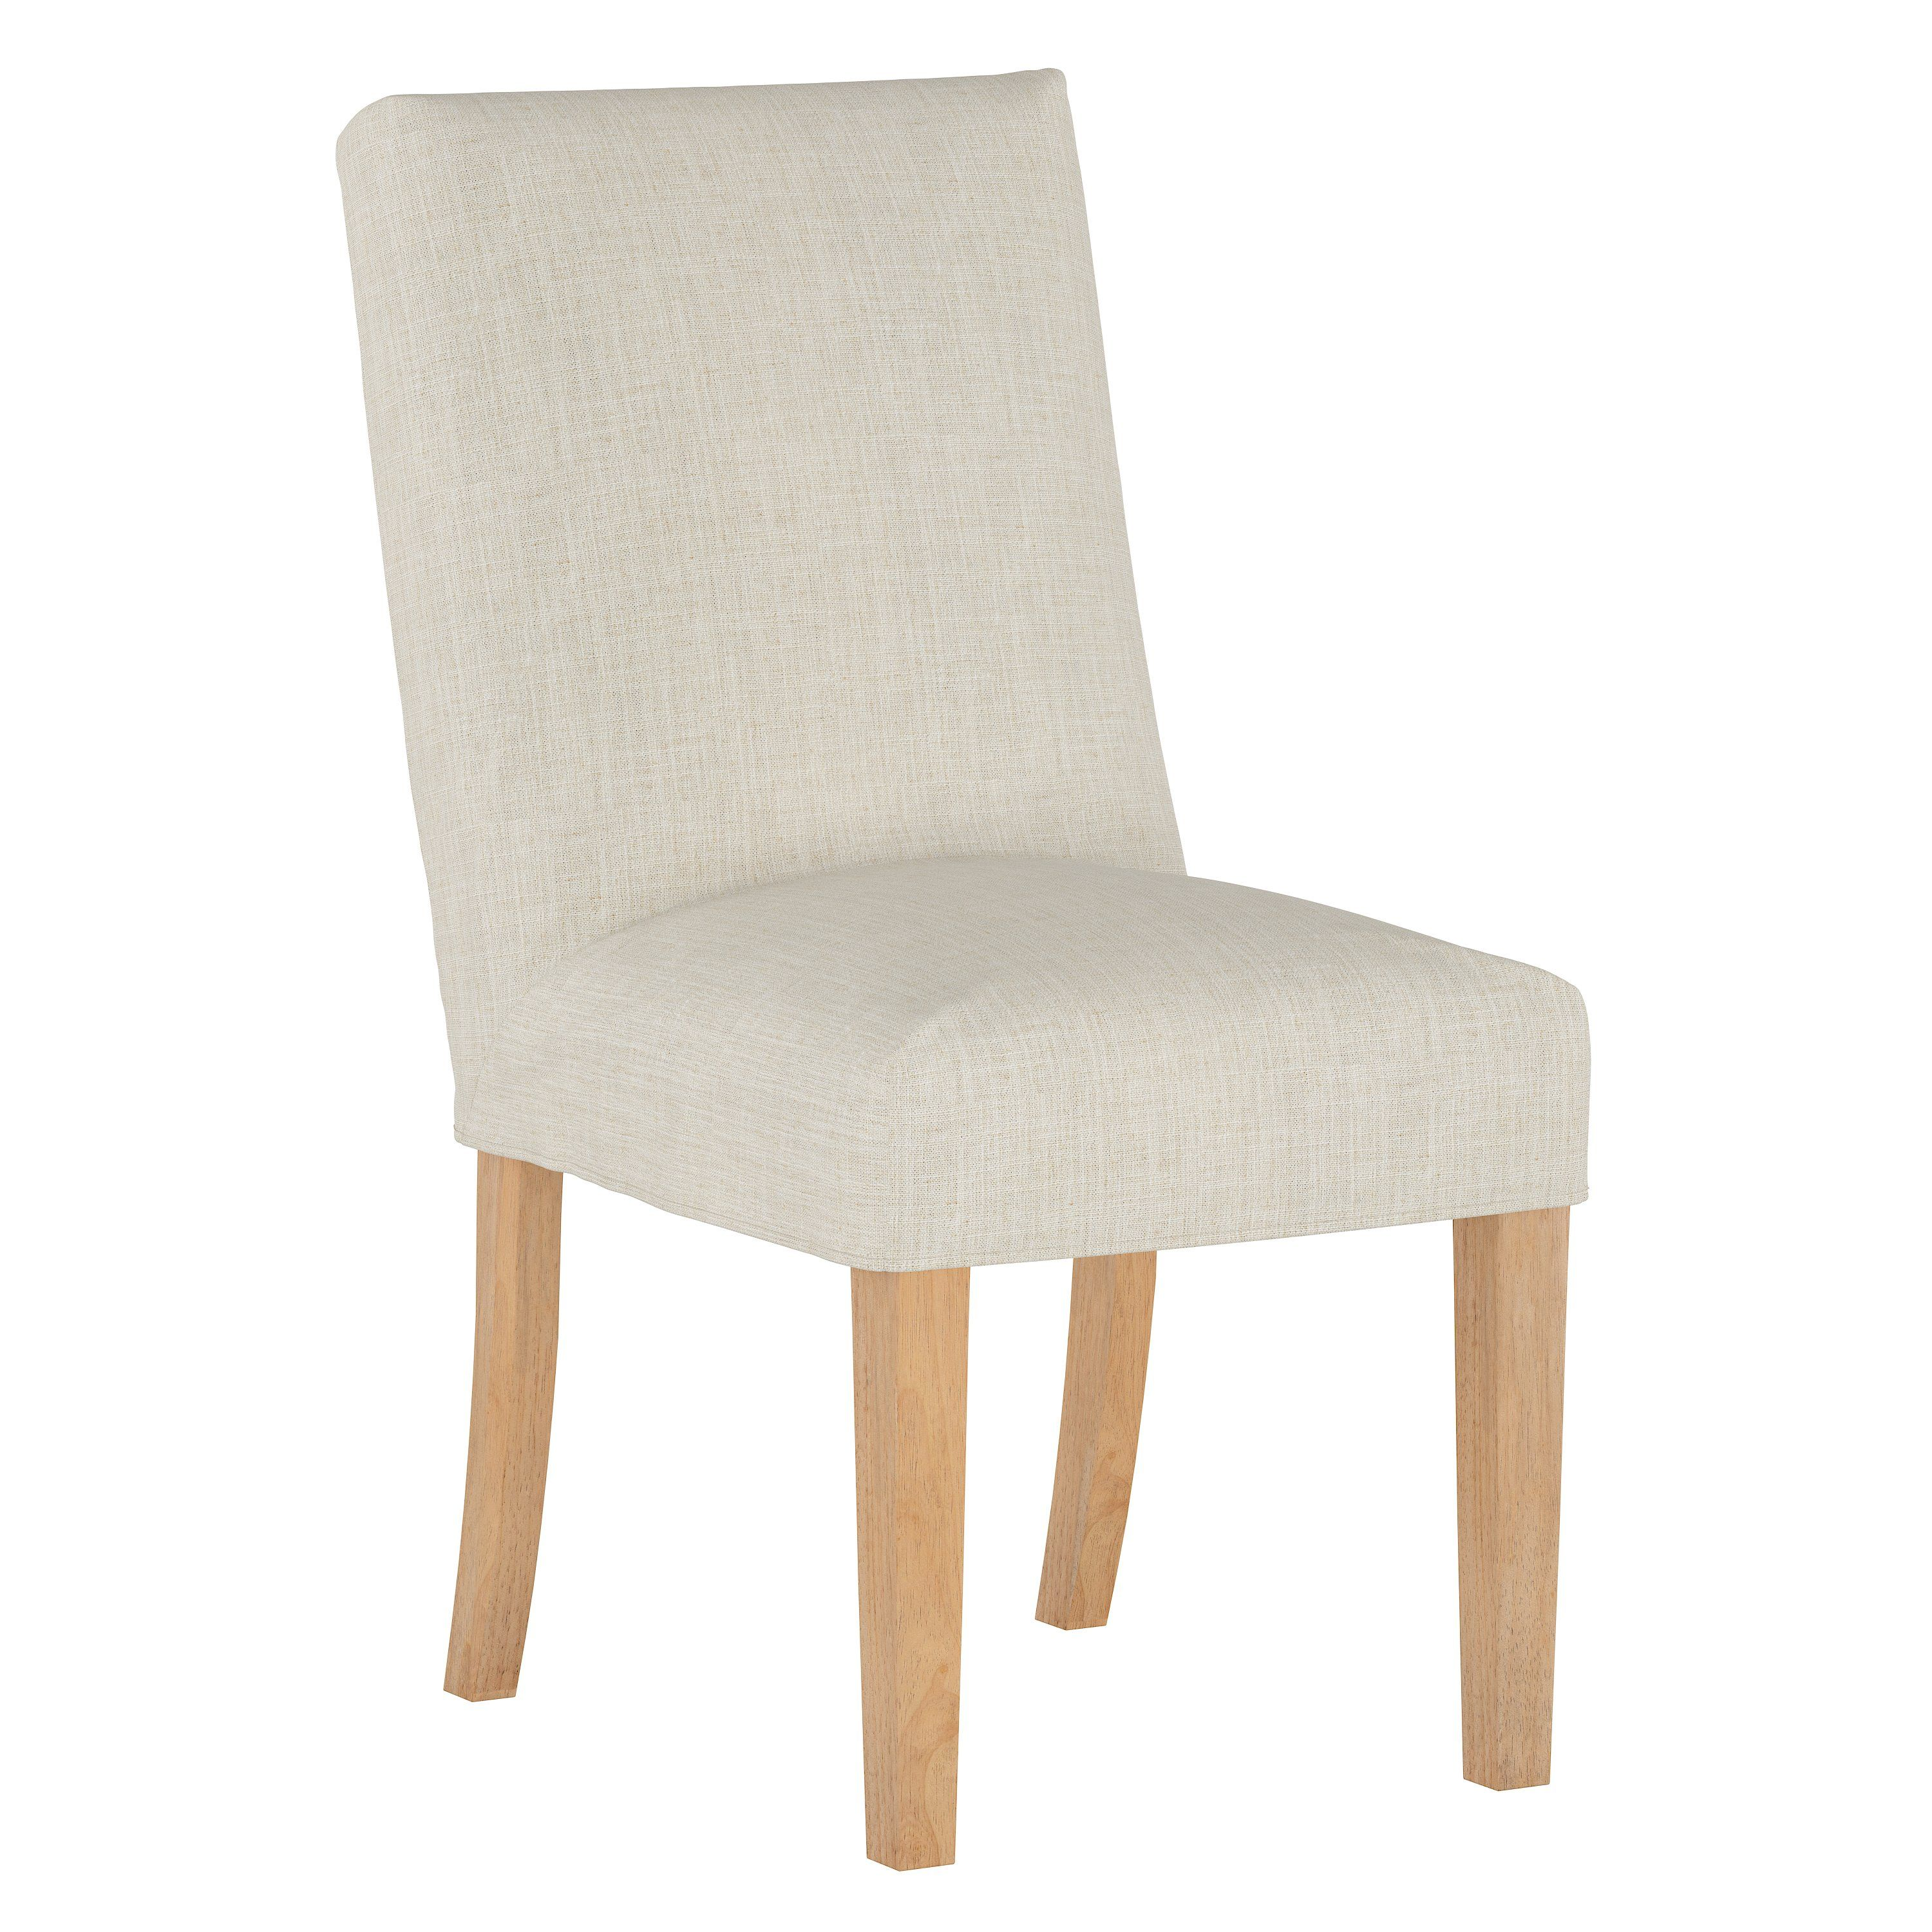 Cream Slipcover Upholstered Dining Room Chair Jennifer